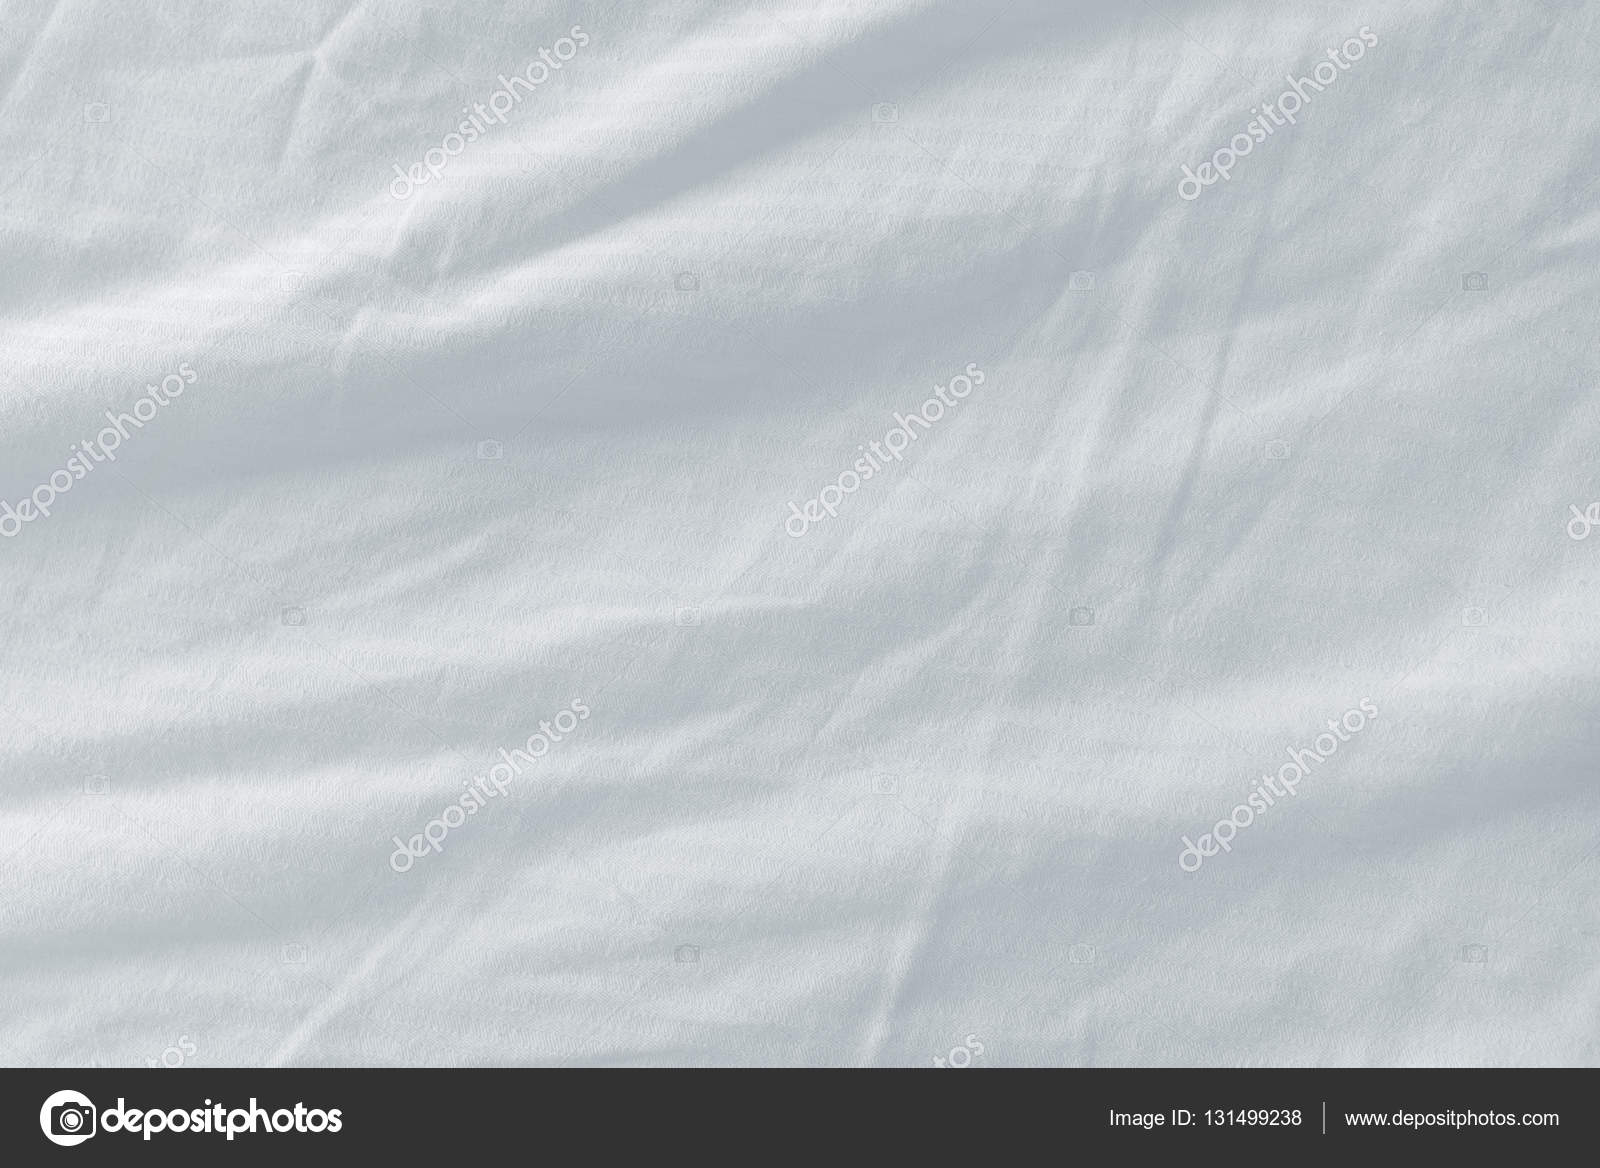 Bed sheets texture - Used Bed Sheets Texture Stock Photo 131499238